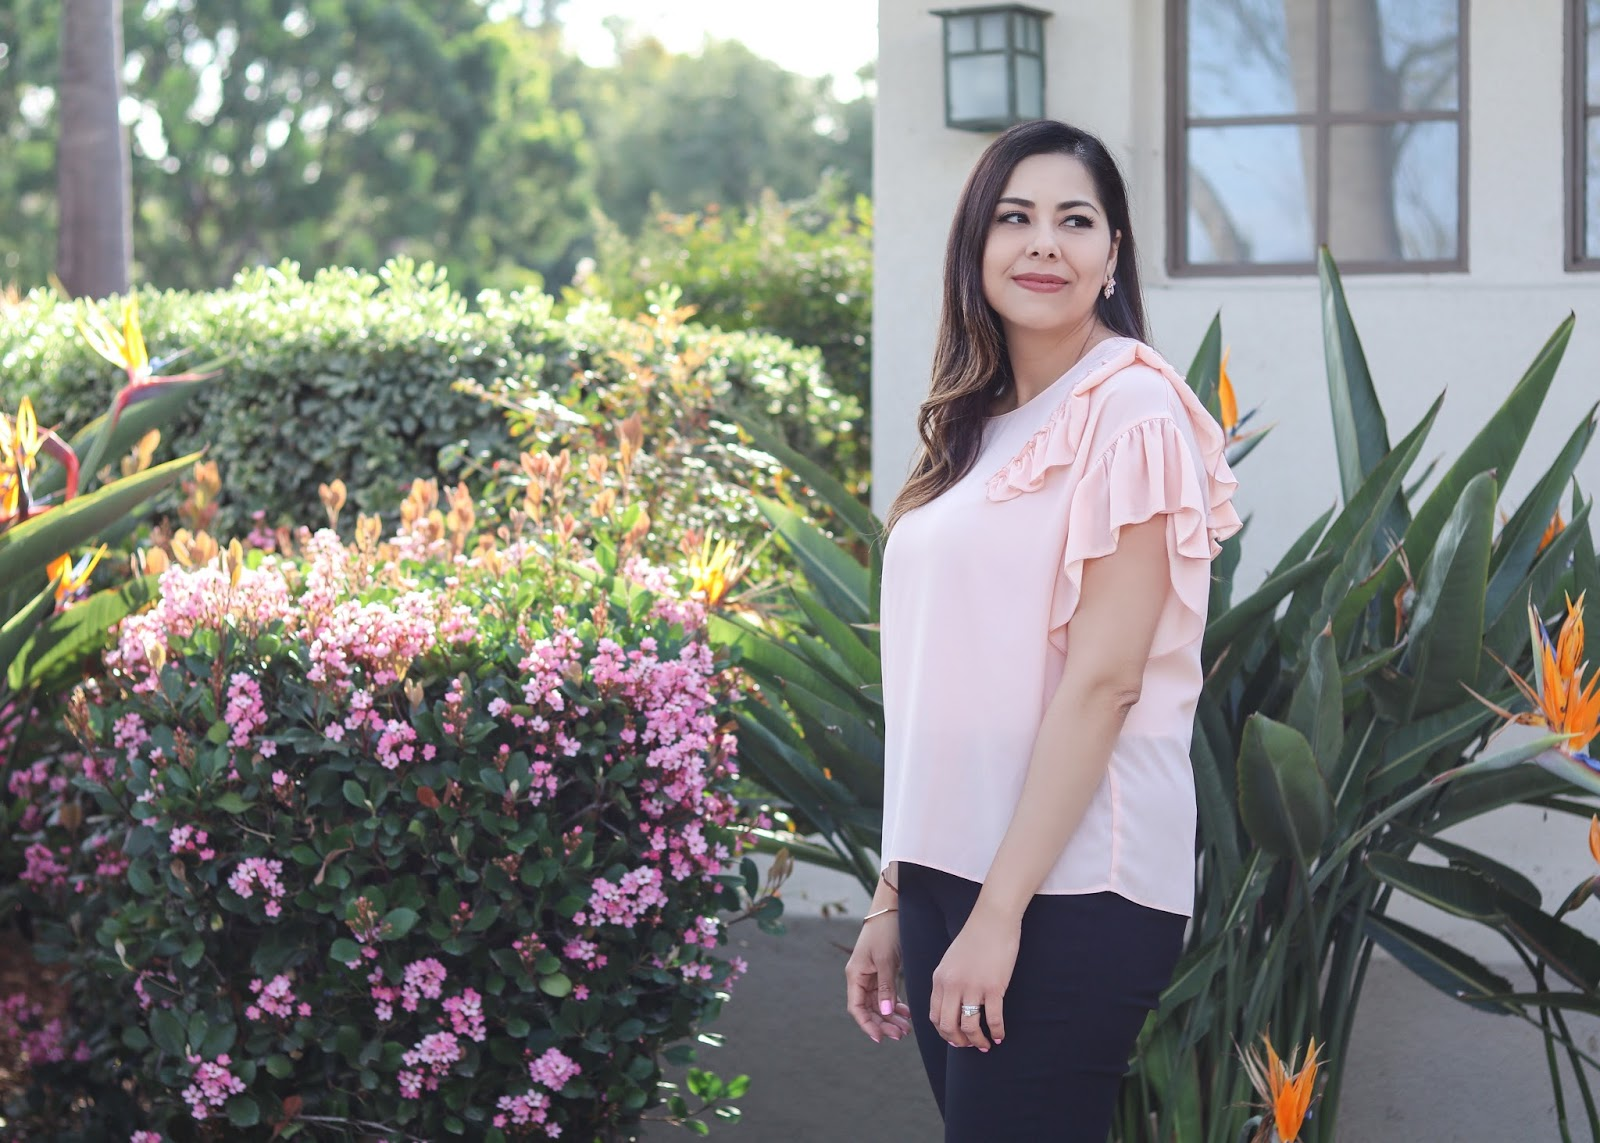 Pink ruffled top, libby edelman pink top, spring style with jcpenney